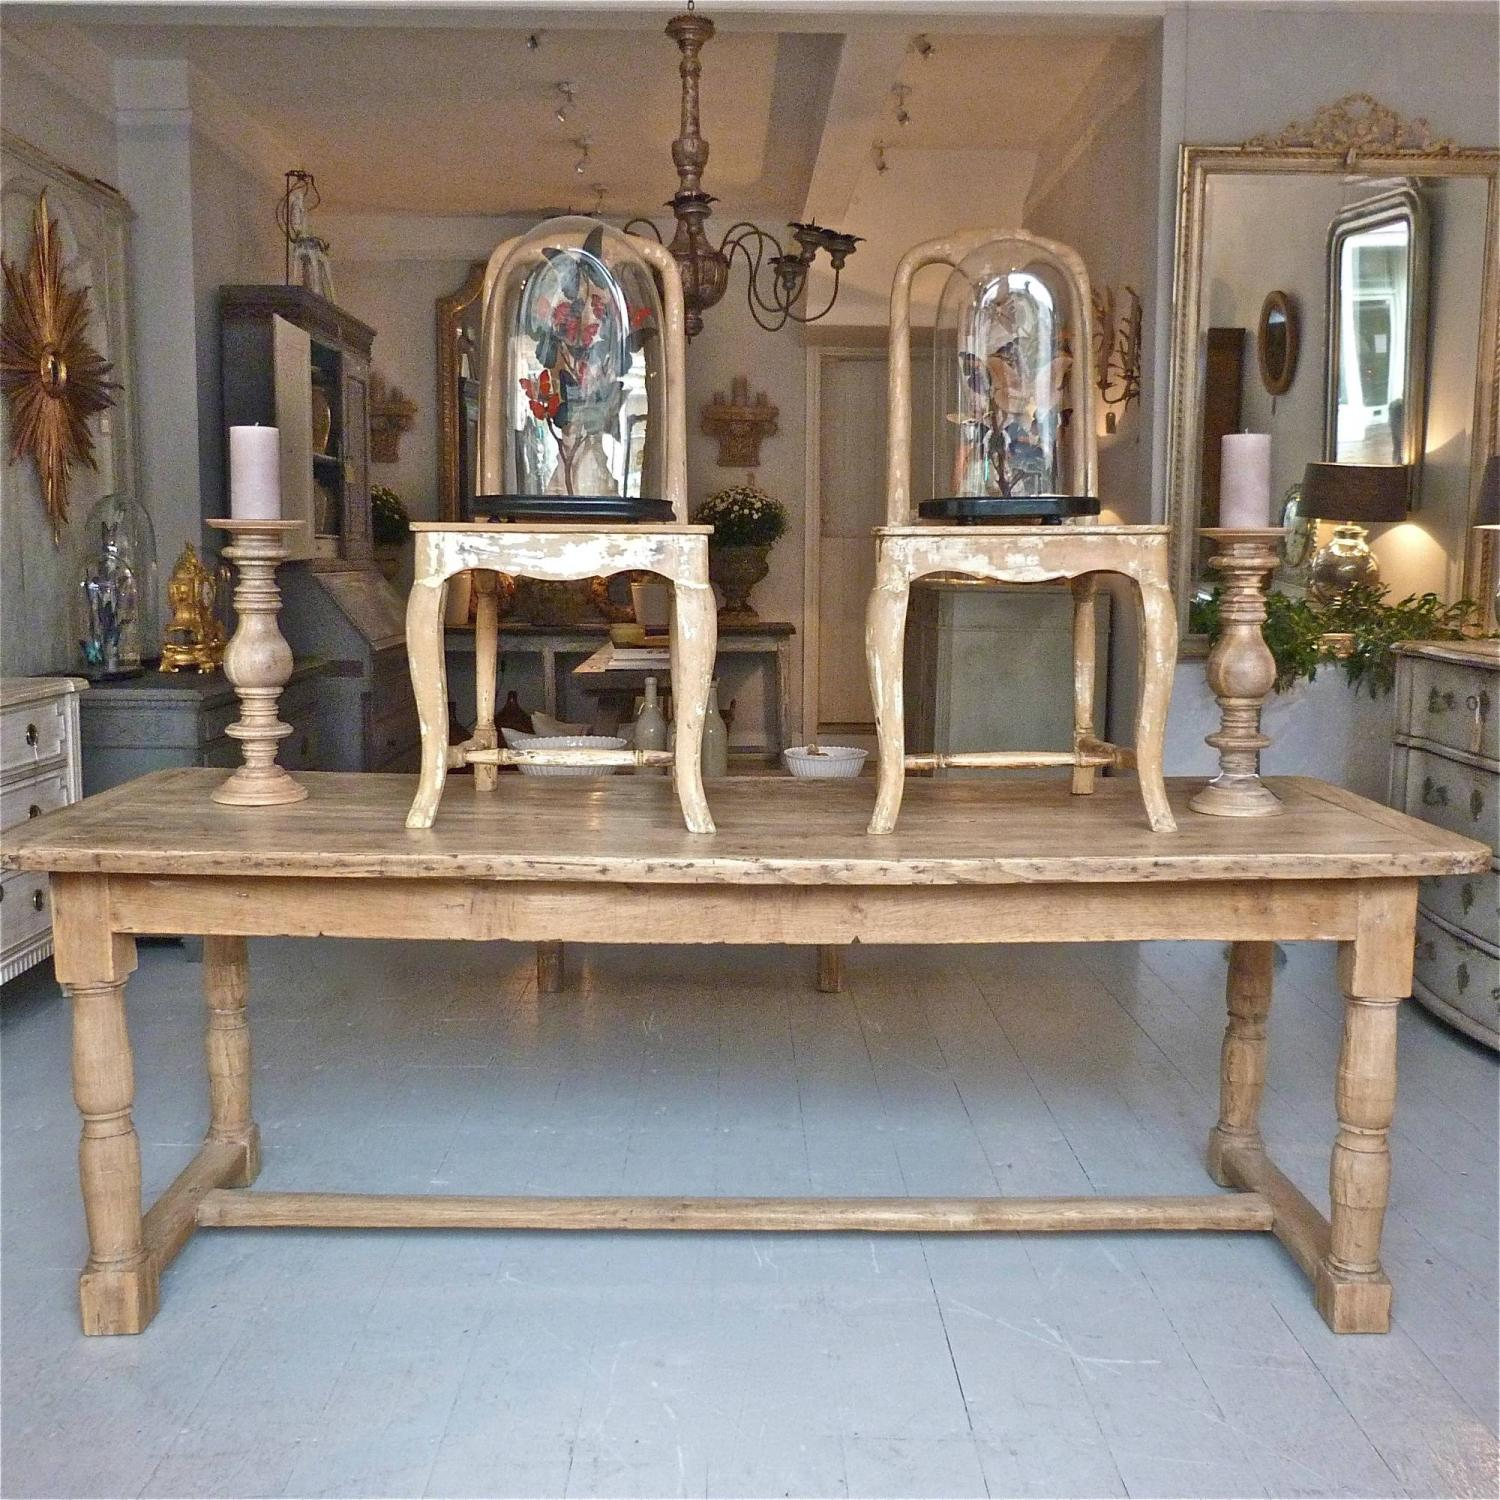 18TH CENTURY FRENCH OAK REFECTORY TABLE